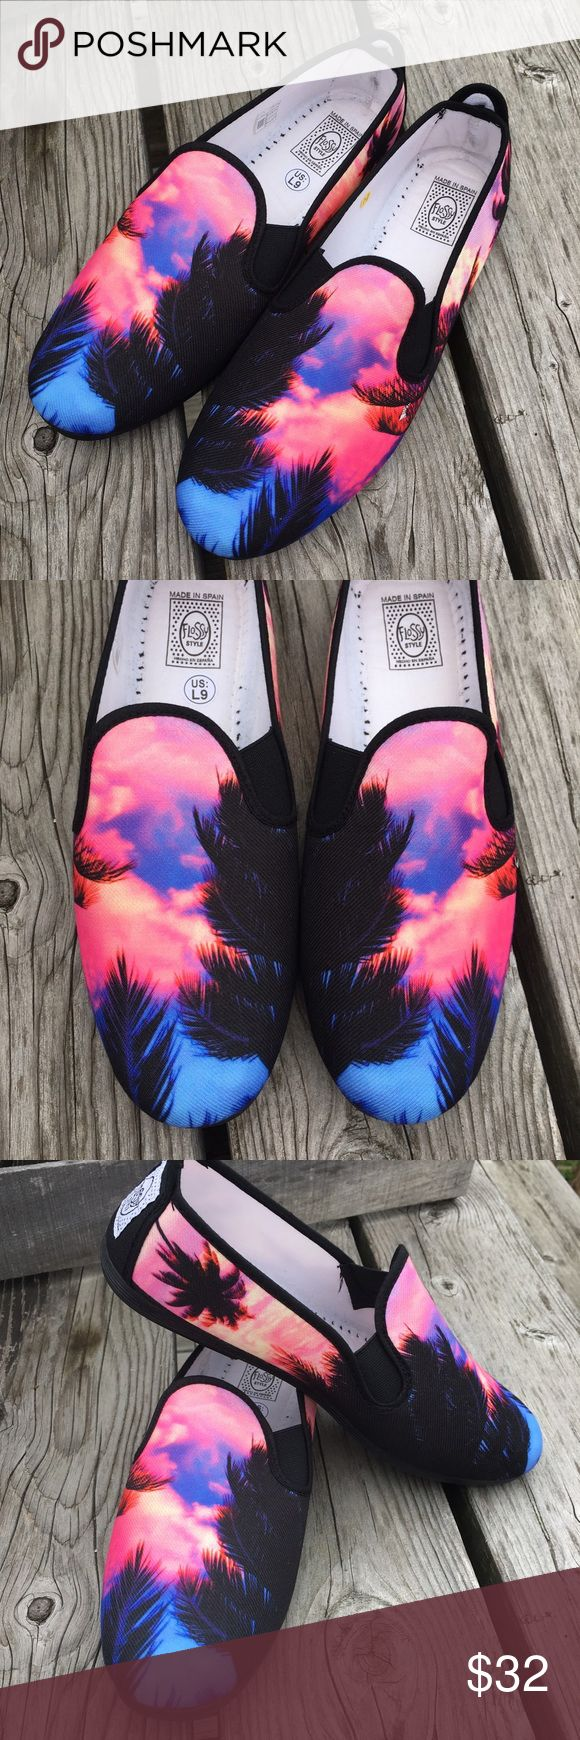 🆕List! Flossy Tropical Dream Loafers! NEW! SO gorgeous!! Made in Spain - EUR size 41 which is about a women's 10 imo - however my seller called them a size 9. (I do not agree with Poshmark's sizing system, but please ask if you are unsure!). New in box! On a side note - these smell delicious!! 🤗🤗 Flossy Shoes Flats & Loafers